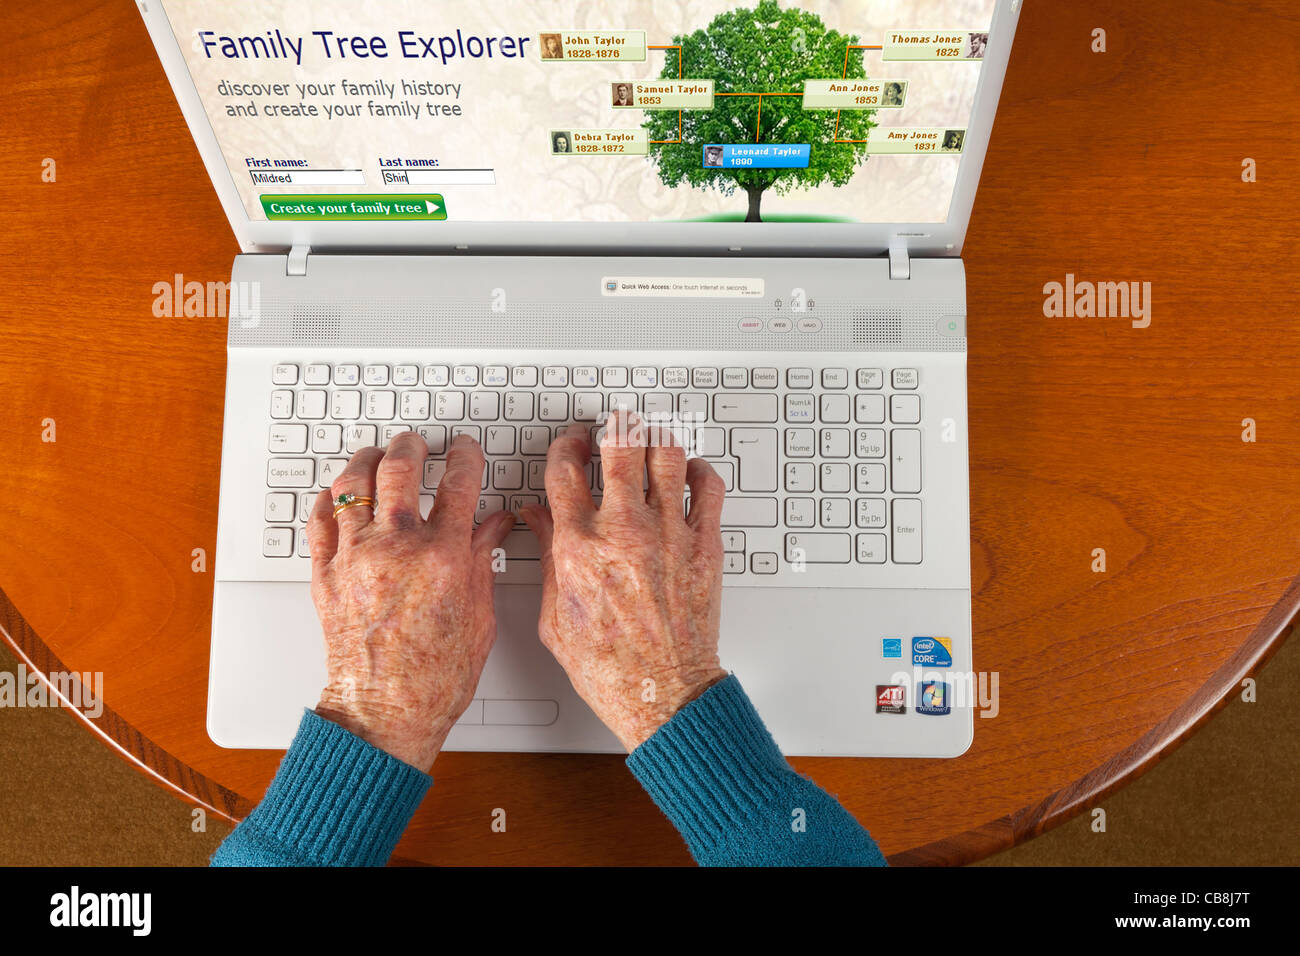 Female elderly hand using a laptop to check the family tree via the internet - Stock Image